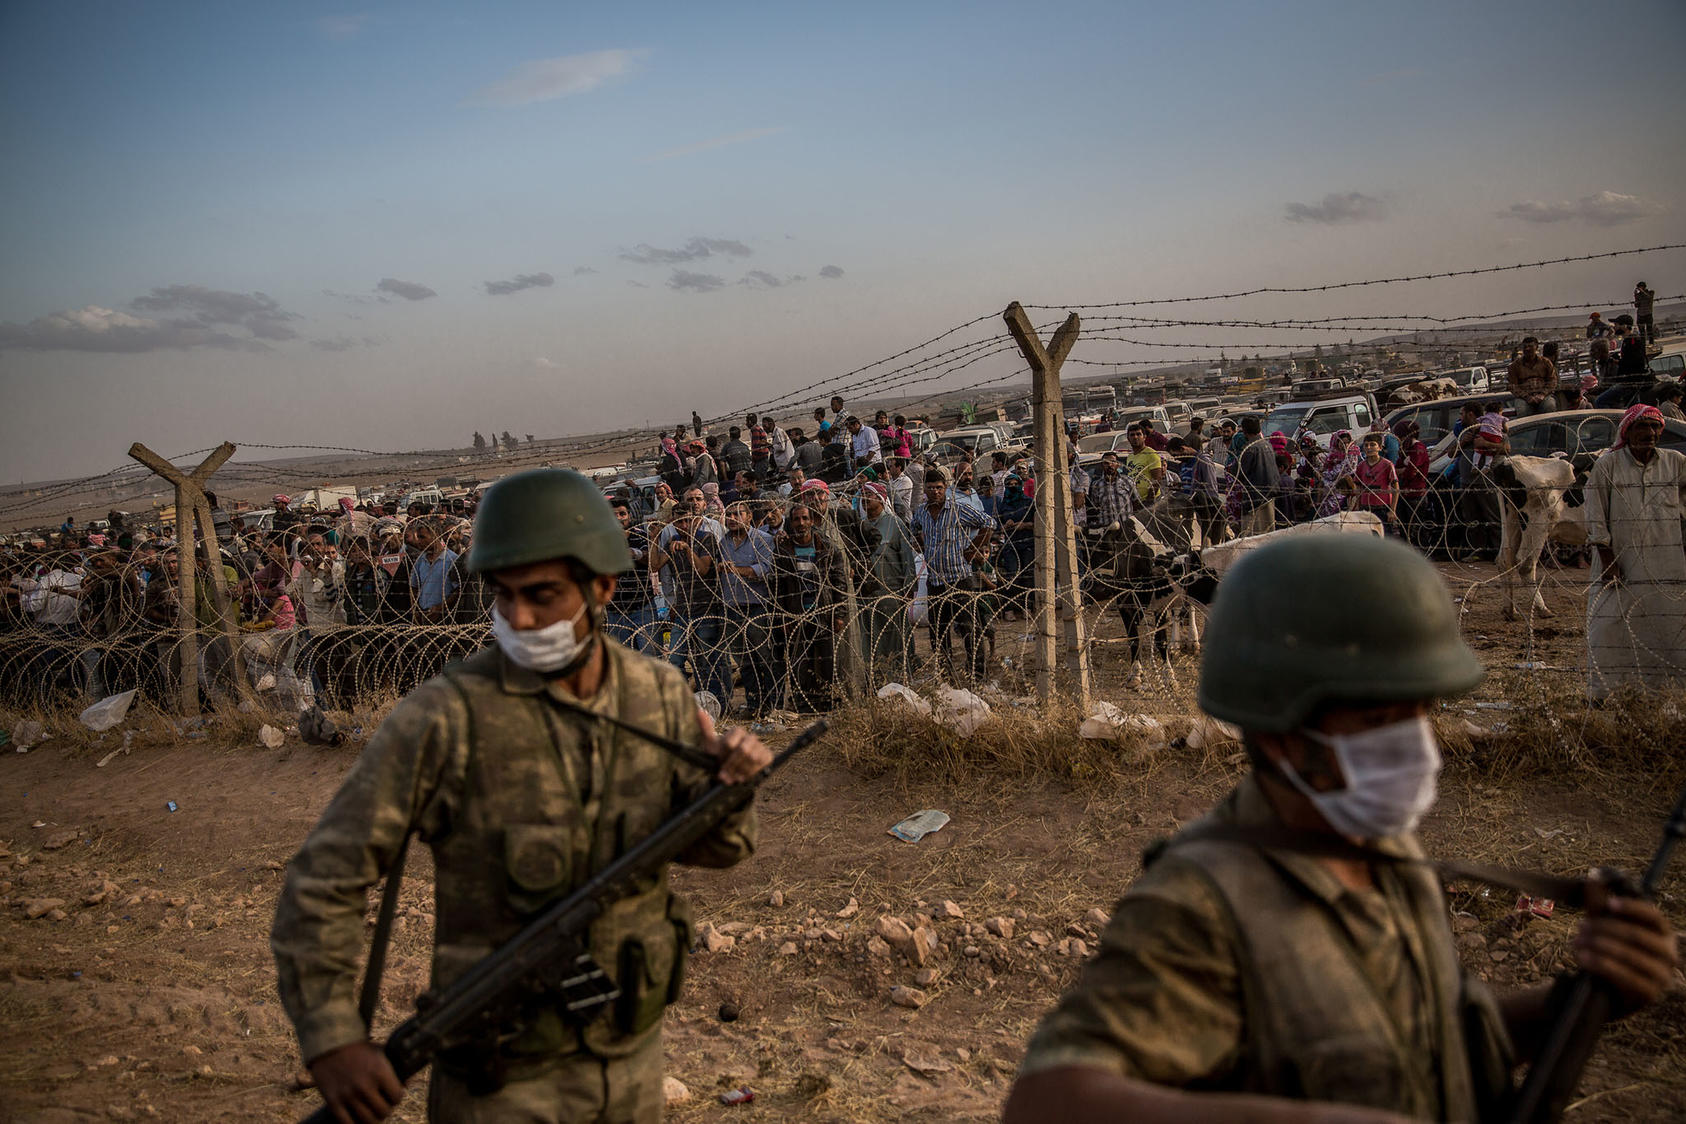 Turkish soldiers patrol a border fence as a crowd of Syrian Kurdish refugees watch and wait, at the Yumurtalik border crossing in Turkey Sept. 29, 2014. (Bryan Denton/The New York Times)